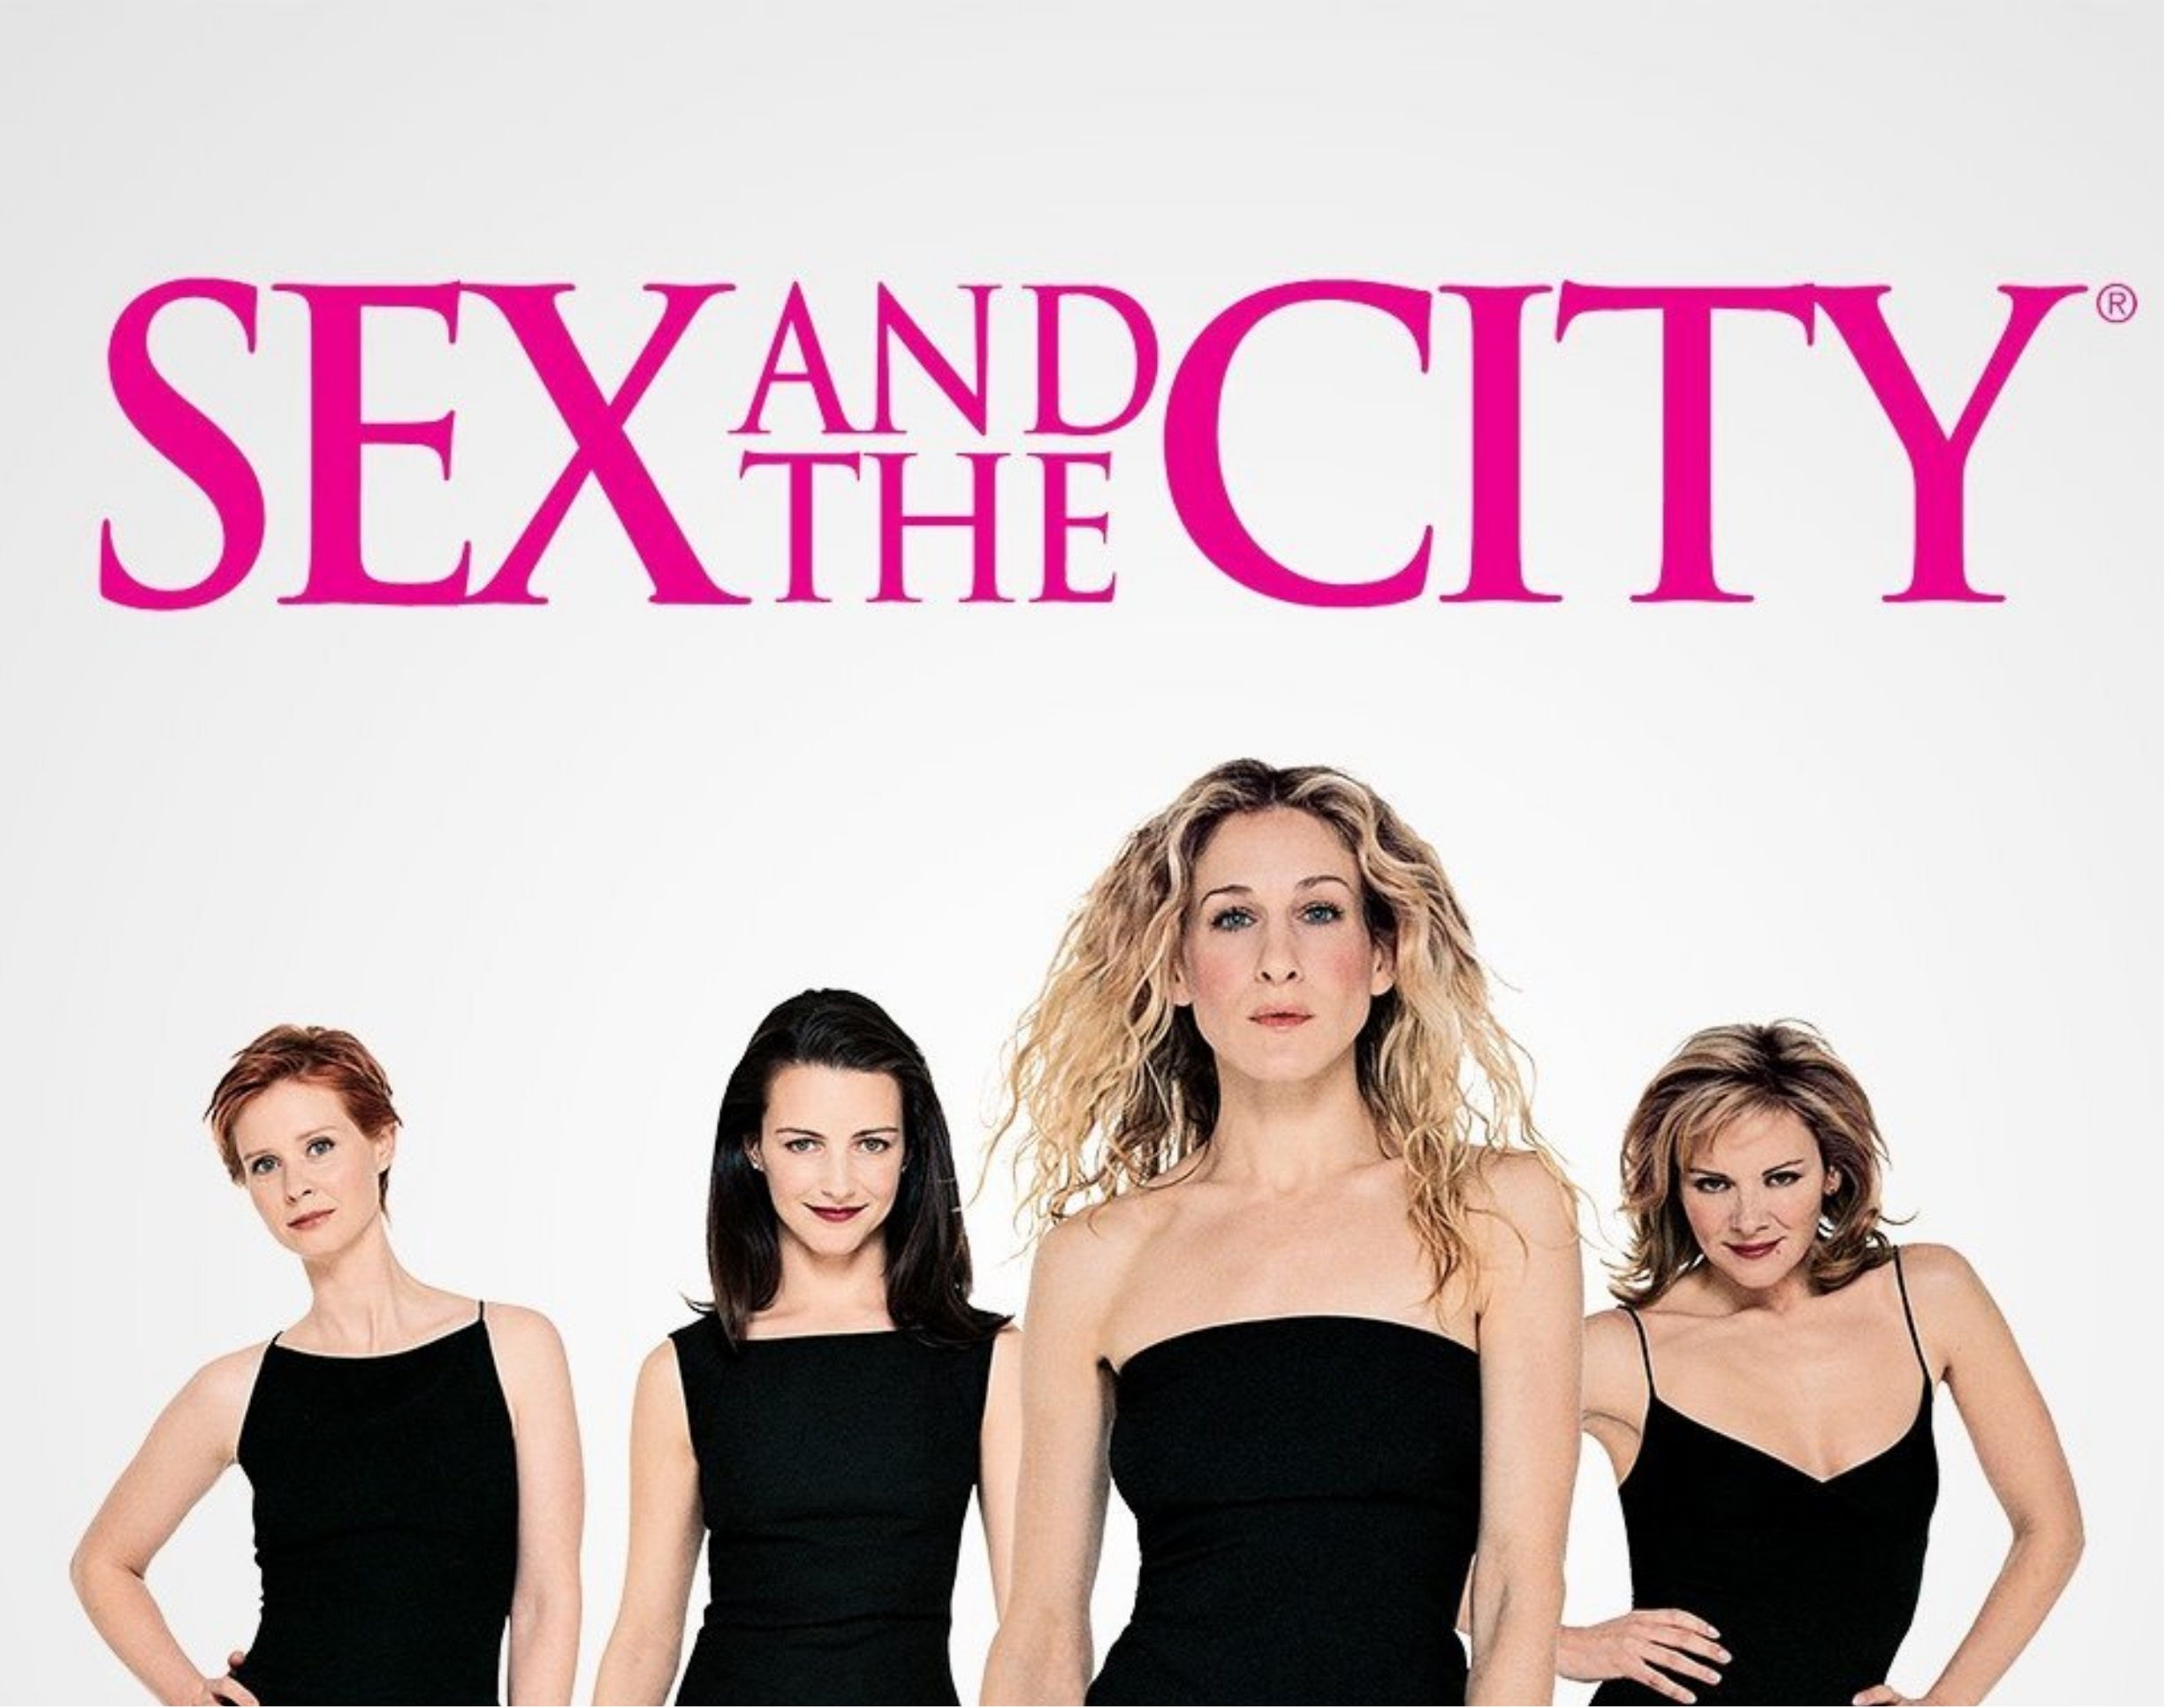 Sex and the City Trivia - Join us for some not so serious trivia, great prizes and plenty of fun! Every Wednesday with your favourite host LaraIt's time to grab your best friends, kick up your Manolos and sip on some Cosmos for our quarterly Trivia Special edition of